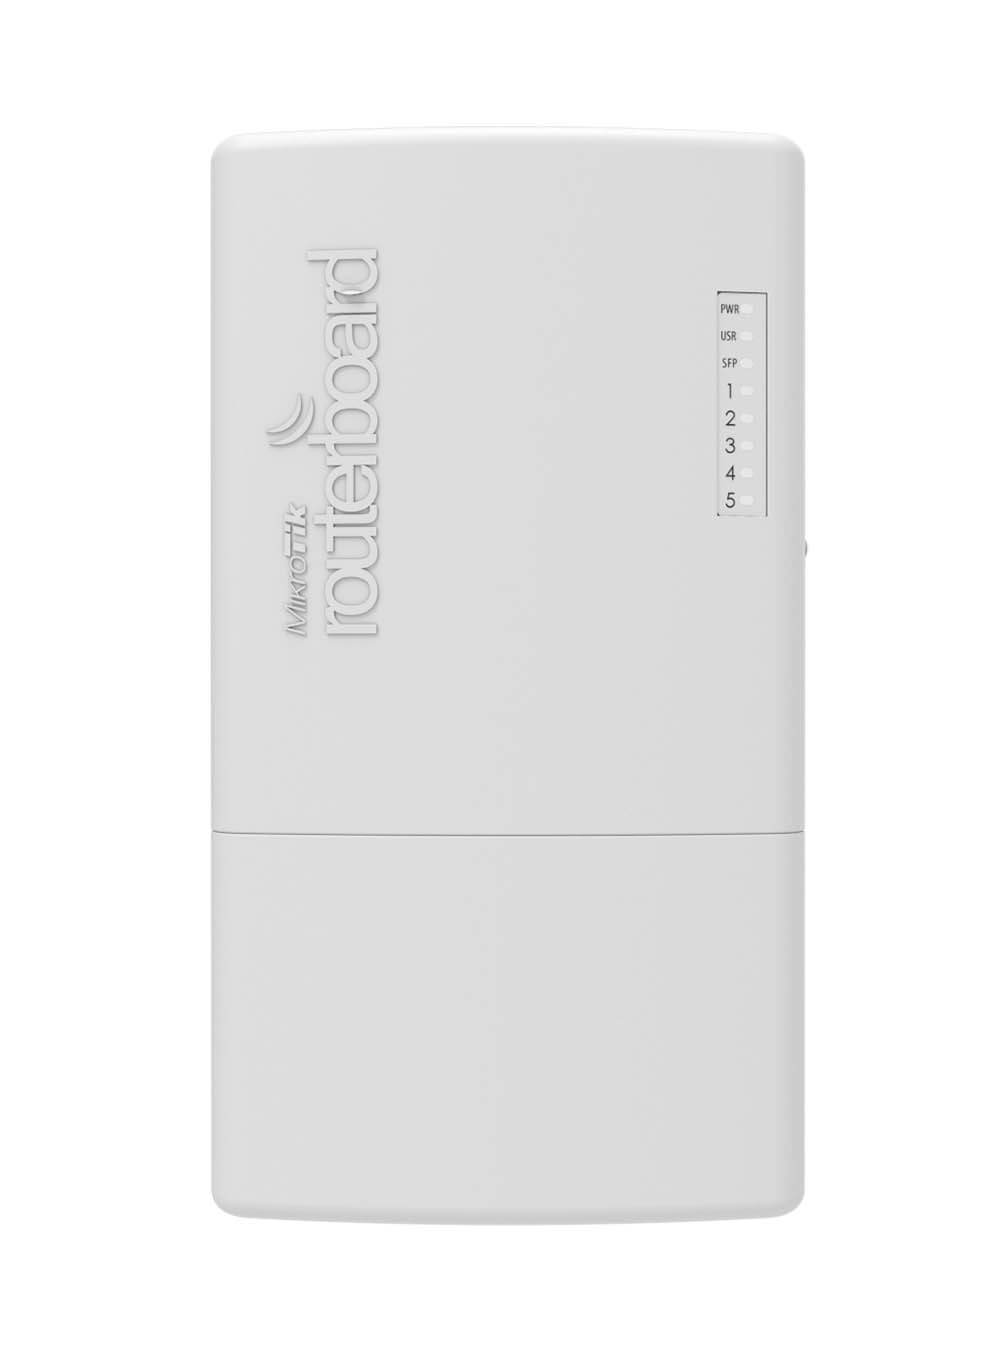 Mikrotik PowerBox PRO Outdoor POE Switch - Router